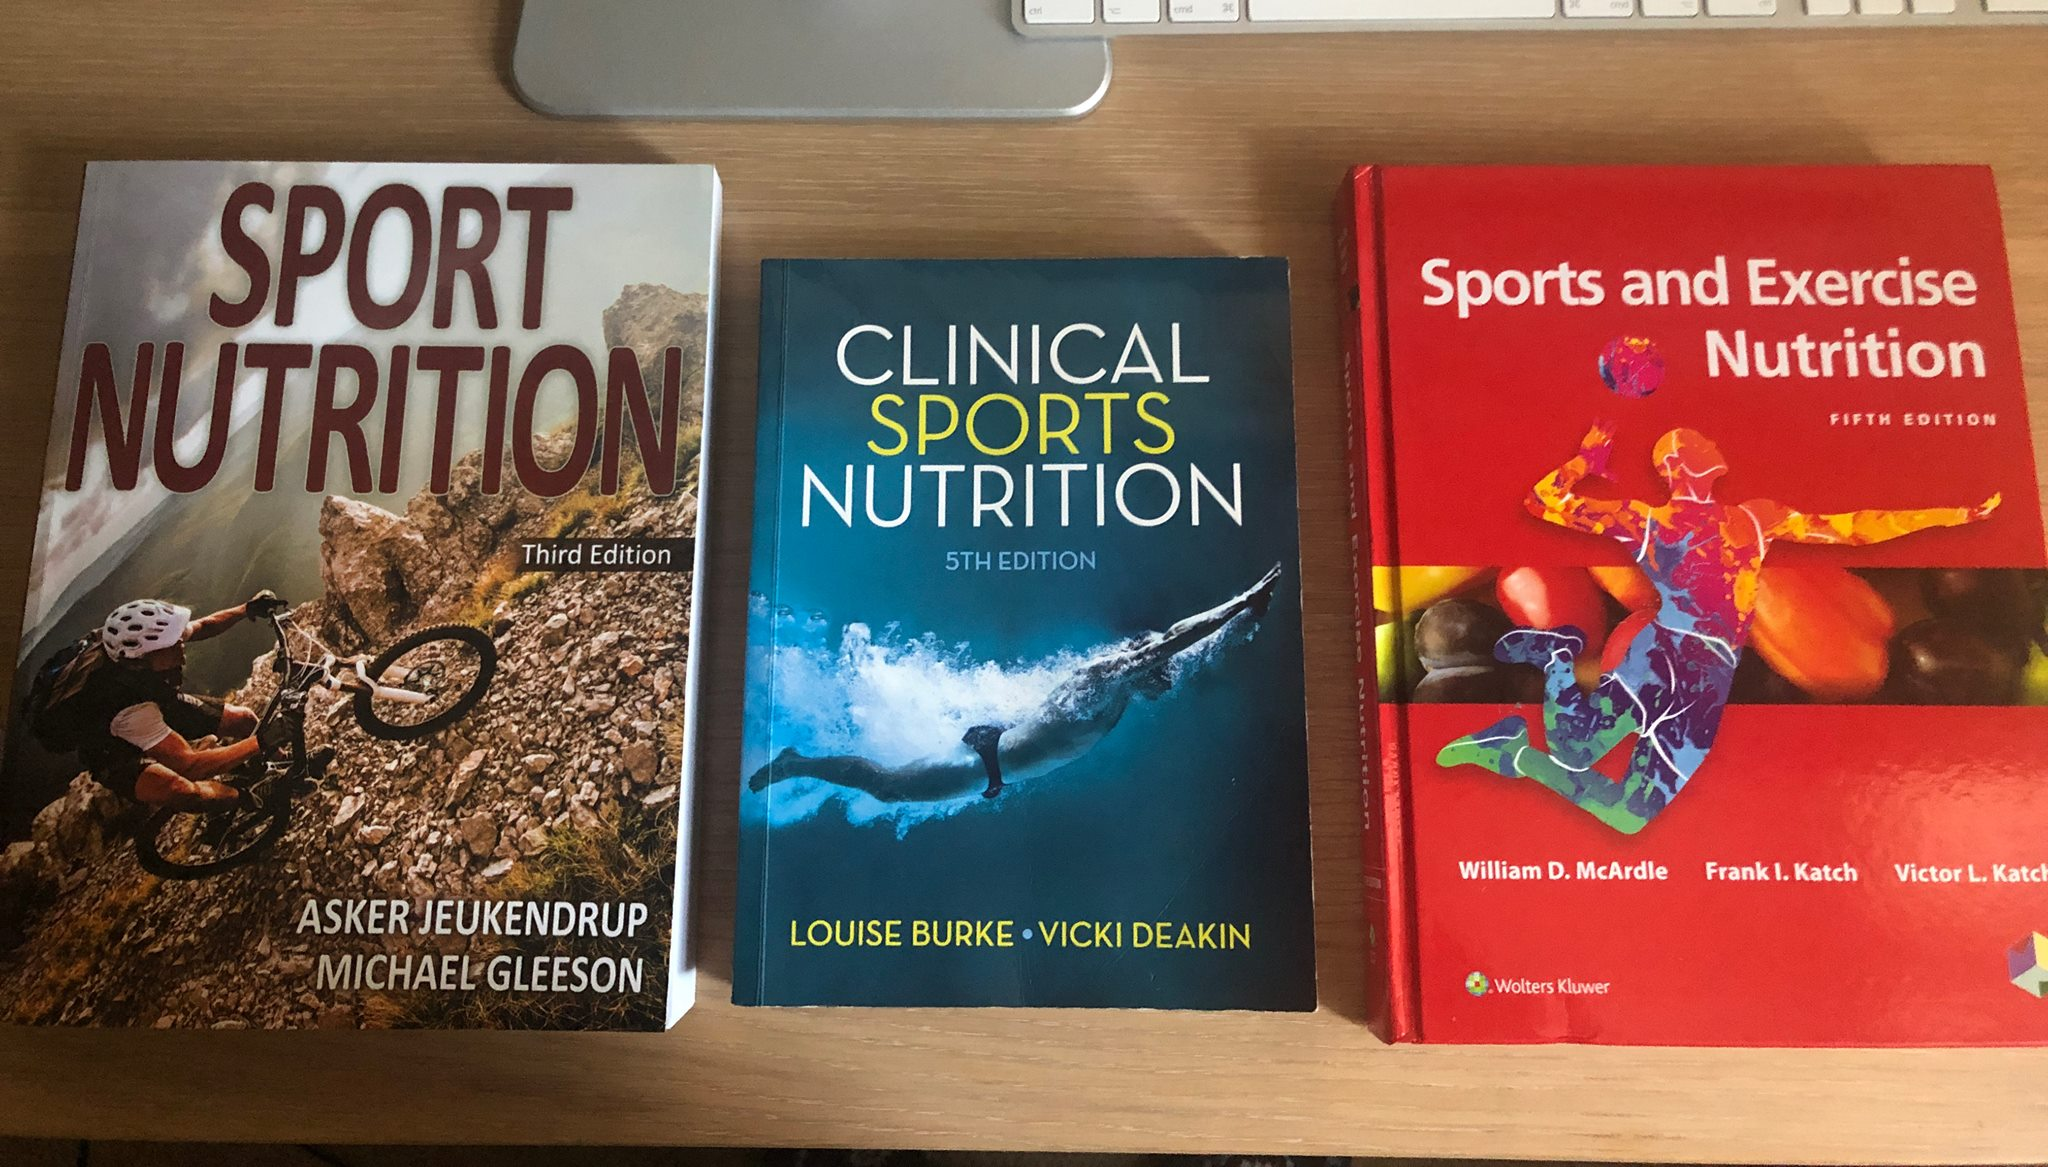 Joseph Agu On Twitter The Best Sports Nutrition Books You Can Get In 2019 1 Sport Nutrition 3rd Ed 2018 By Jeukendrup And Gleeson 2 Clinical Sport Nutrition 5th Ed 2015 By